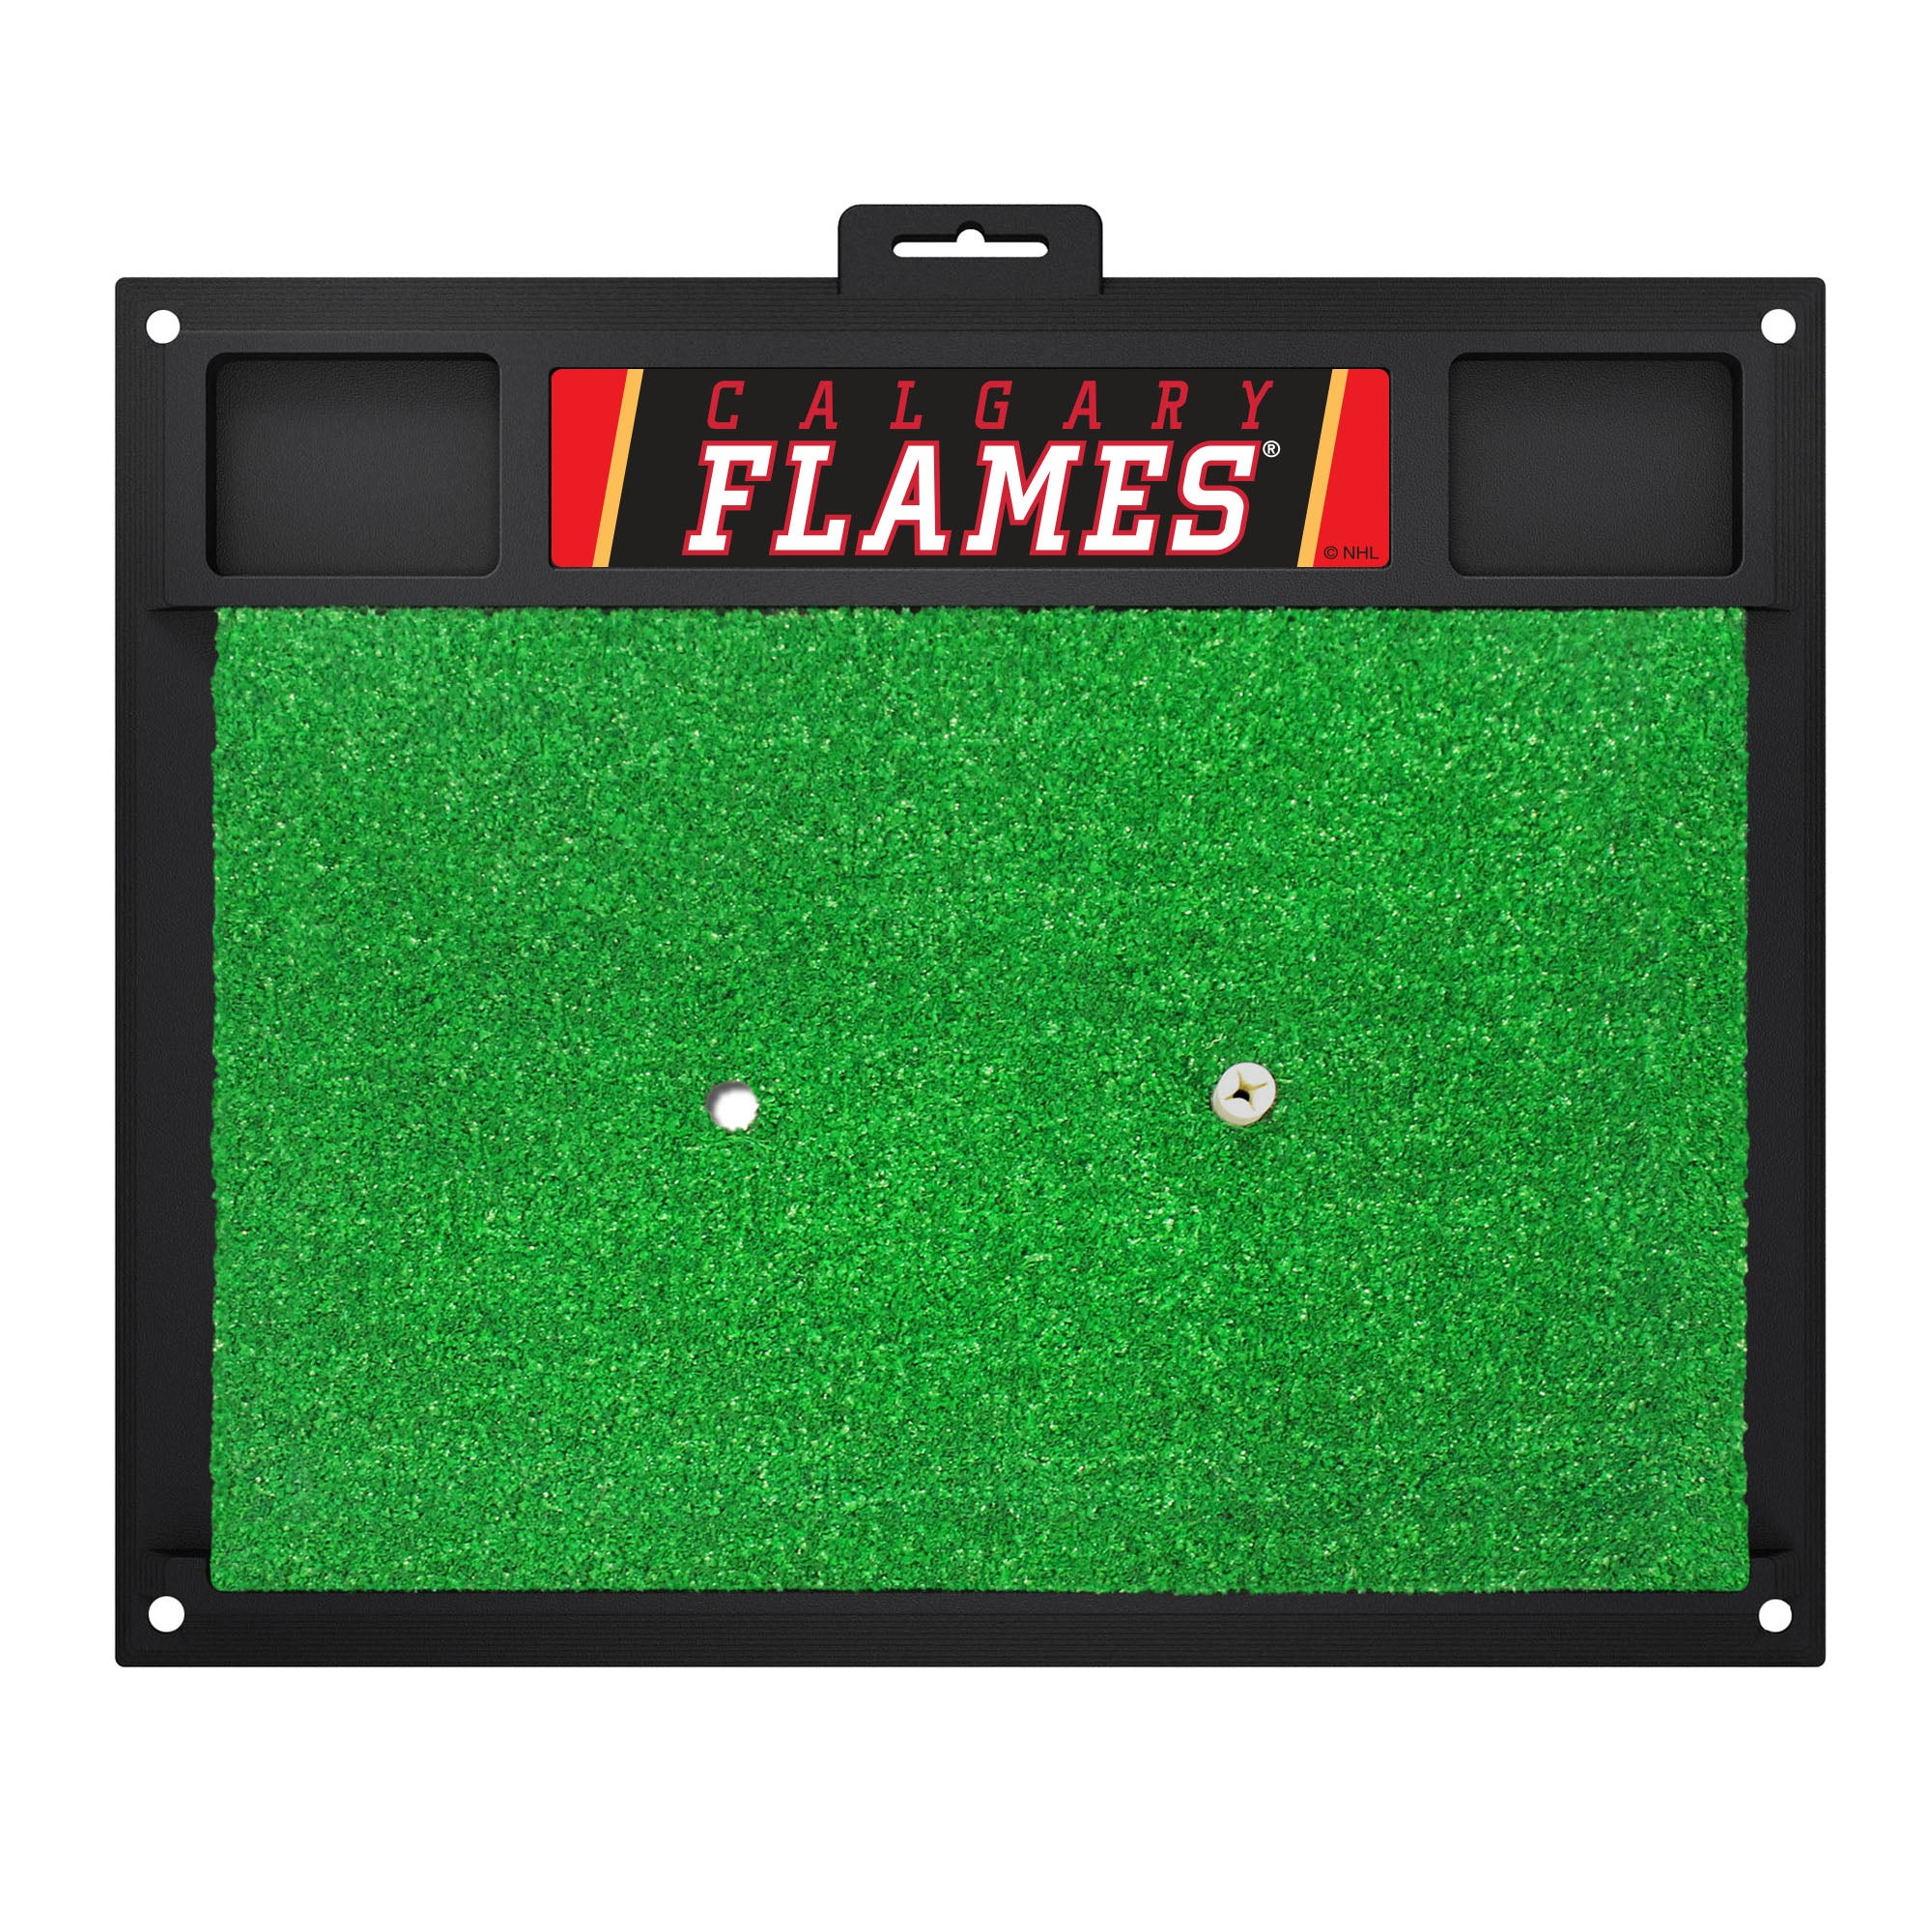 "NHL - Calgary Flames Golf Hitting Mat 36"" x 19.1"""